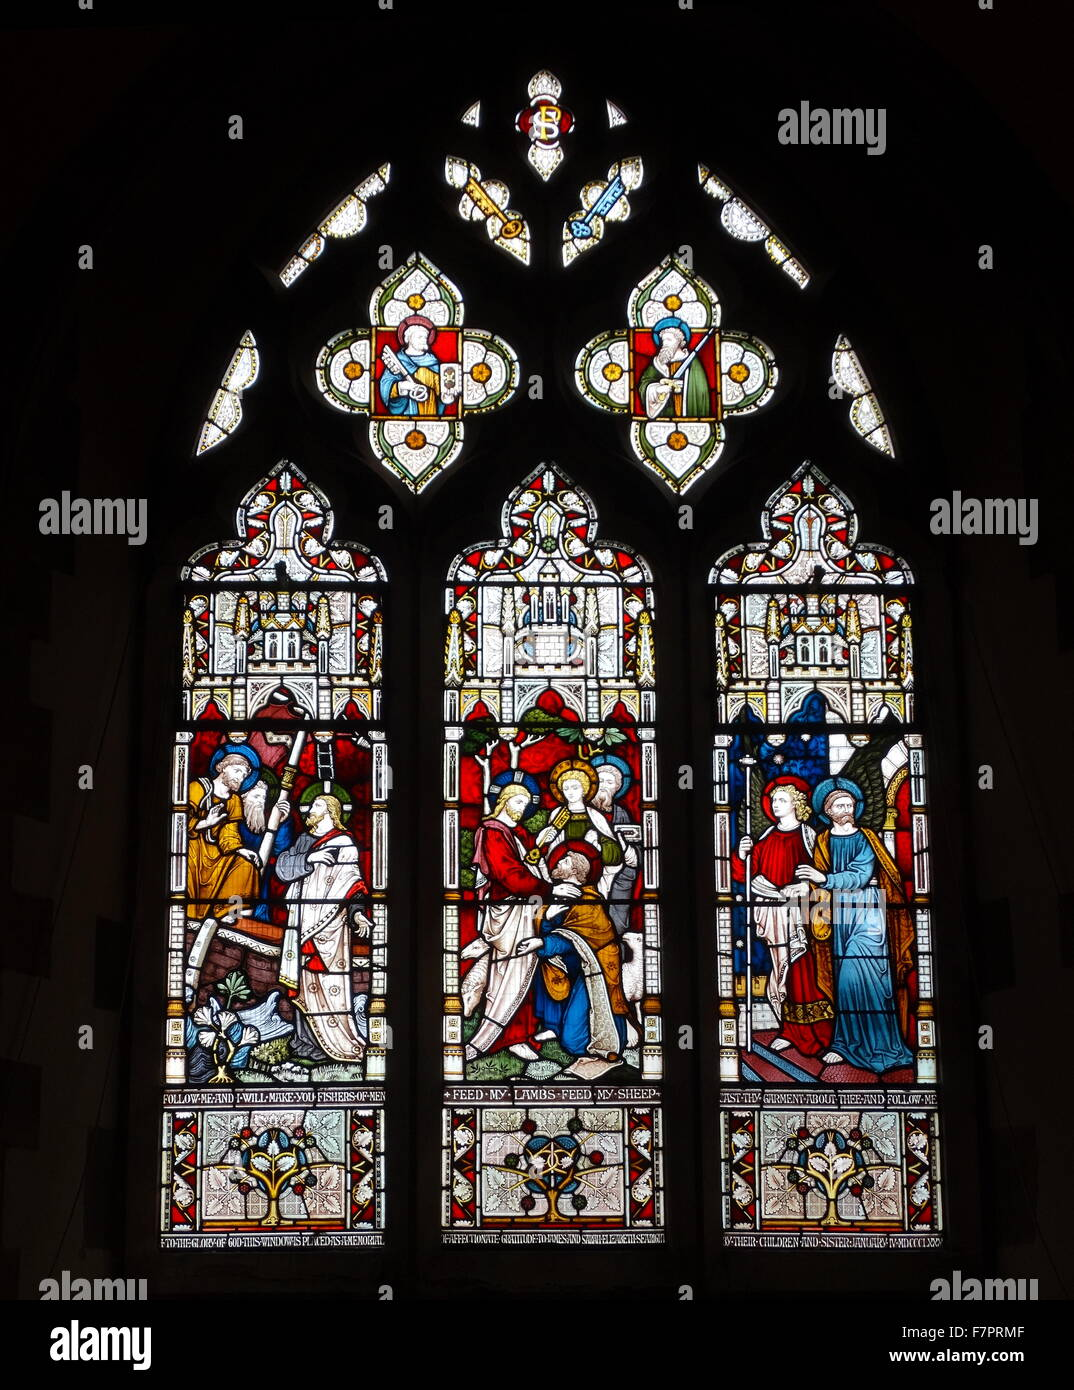 Stained Glass Near Me.Stained Glass Window At St Michael And All Angels Anglican